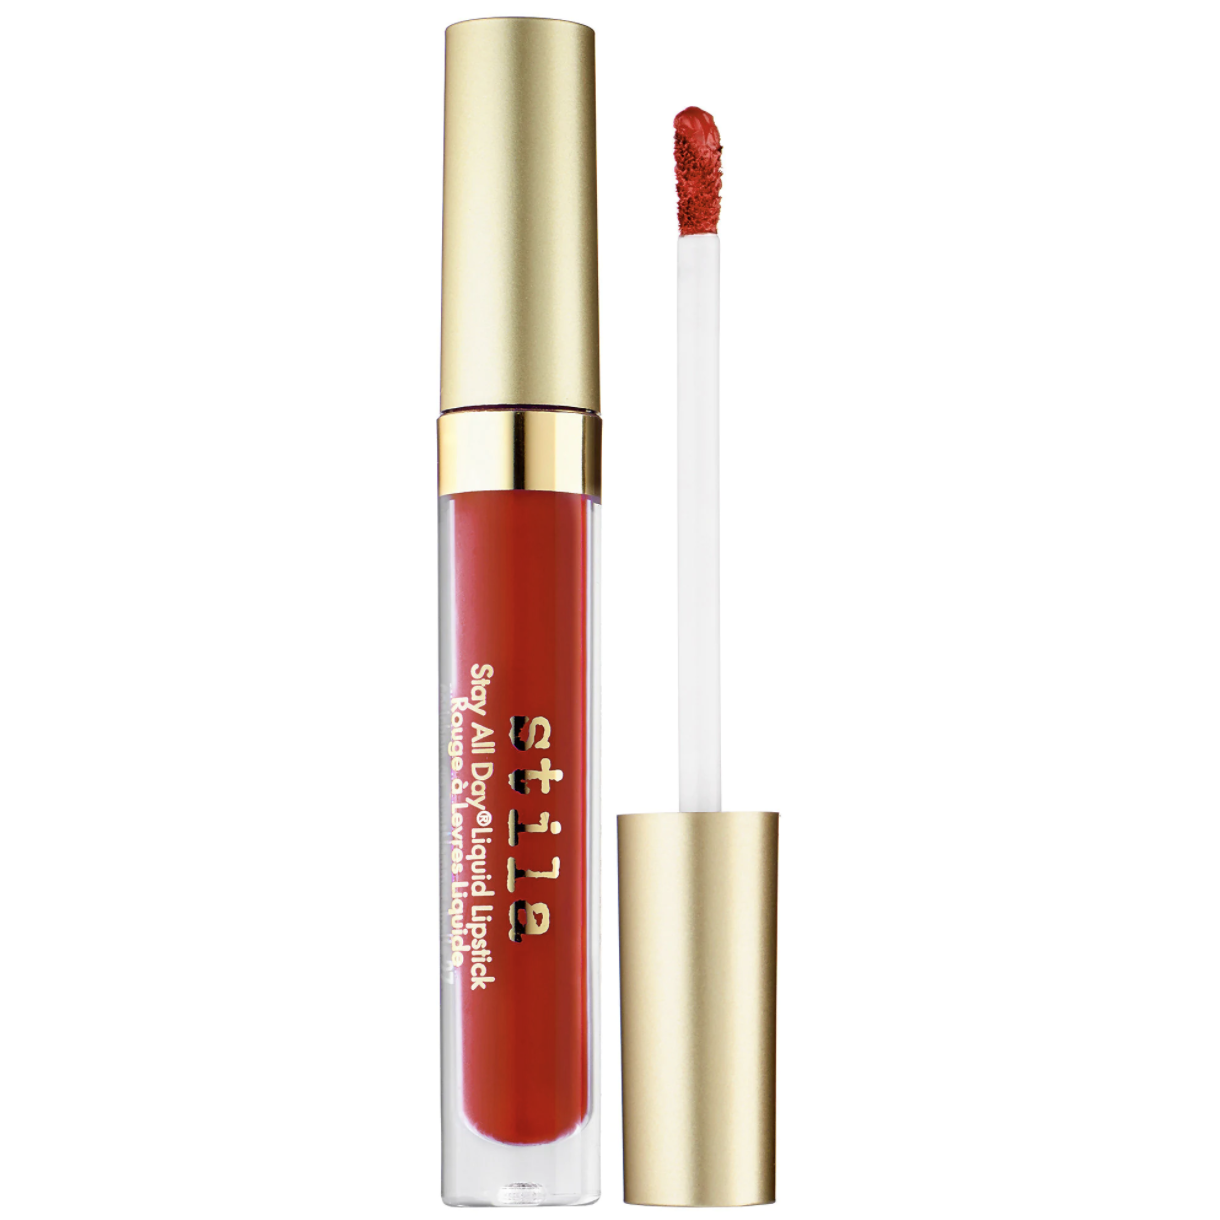 Stay All Day® Liquid Lipstick in Beso stila sephora.com $22.00 SHOP NOW Famously the go-to of Congresswoman Alexandria Ocasio-Cortez, this lipstick shade is perfect for when you want to make a powerful statement.